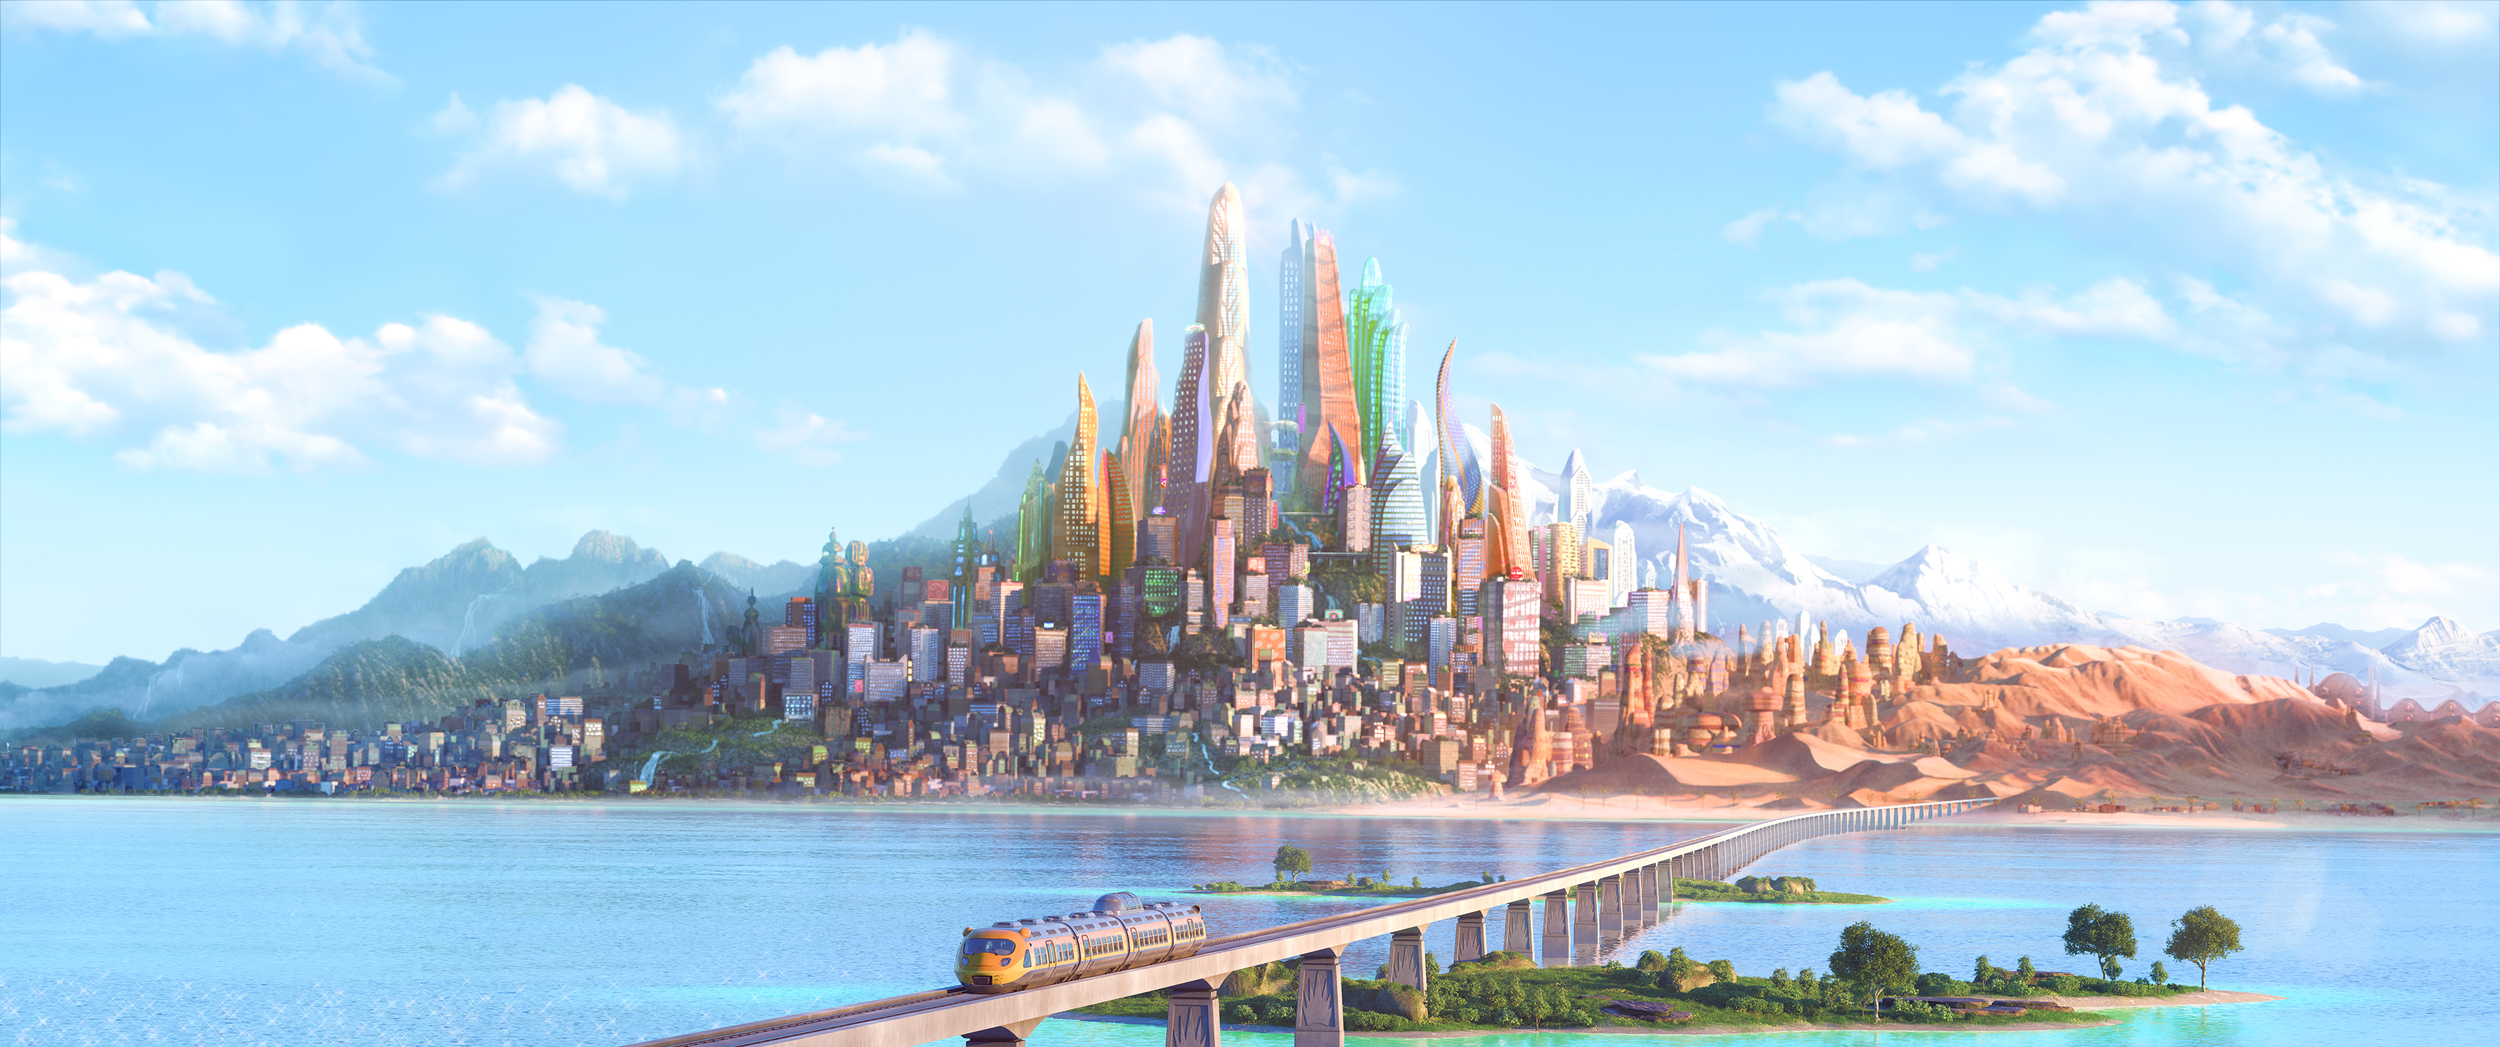 Zootopia - art courtesy of Disney